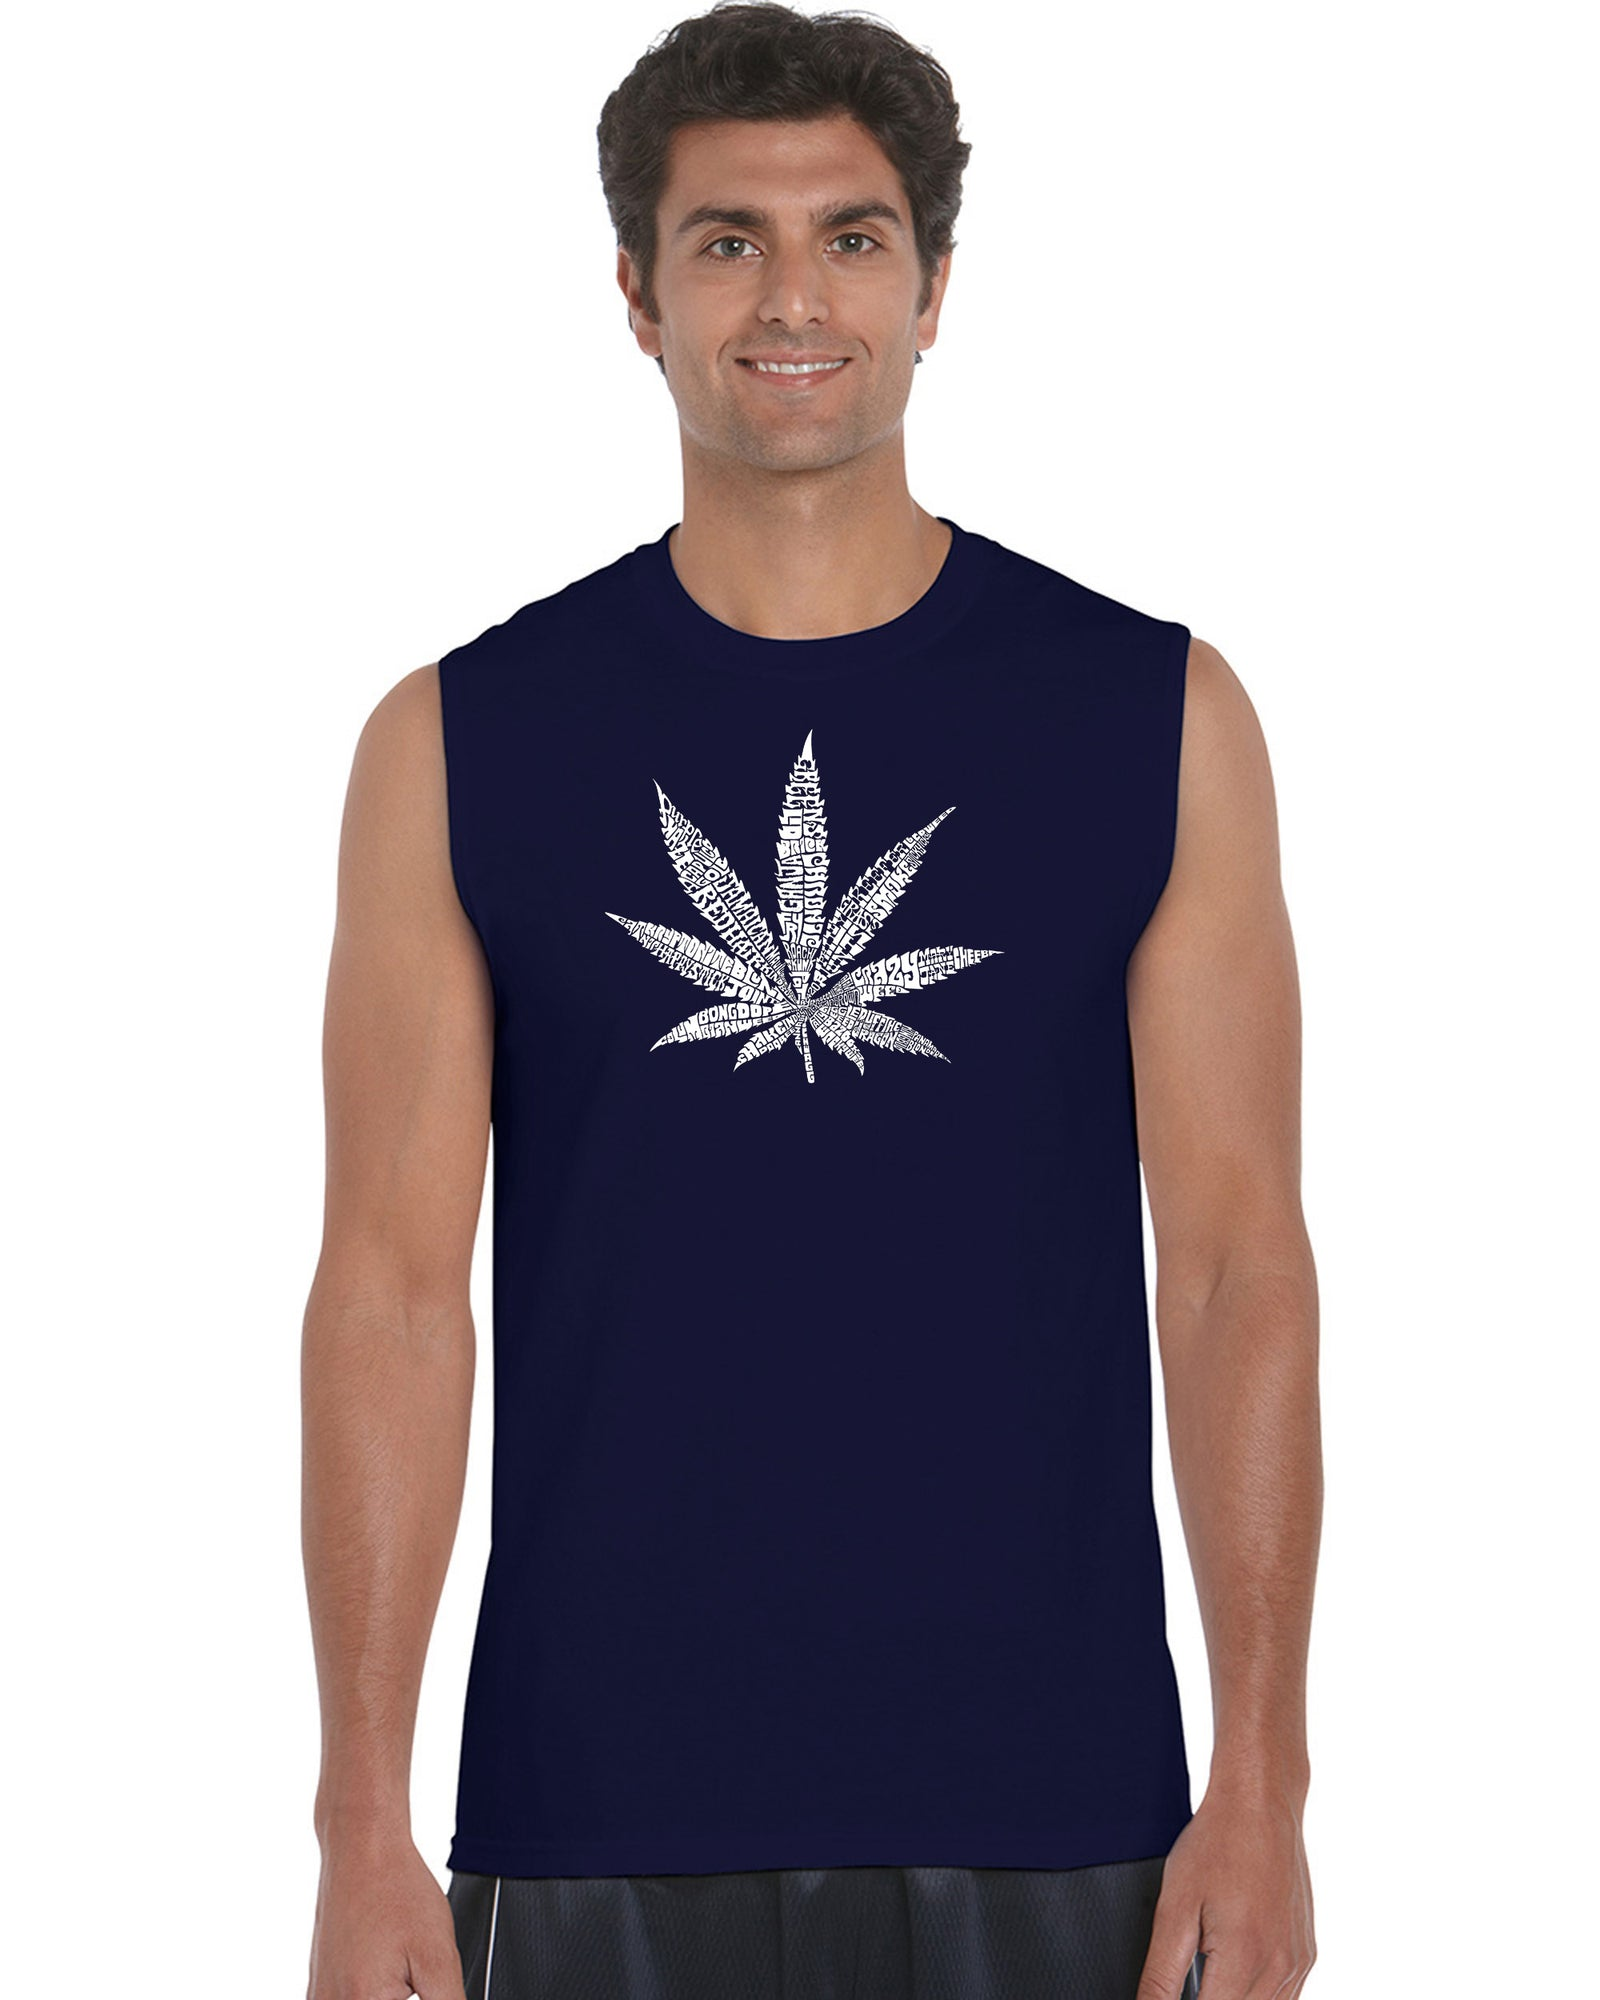 Men's Sleeveless T-shirt - 50 DIFFERENT STREET TERMS FOR MARIJUANA